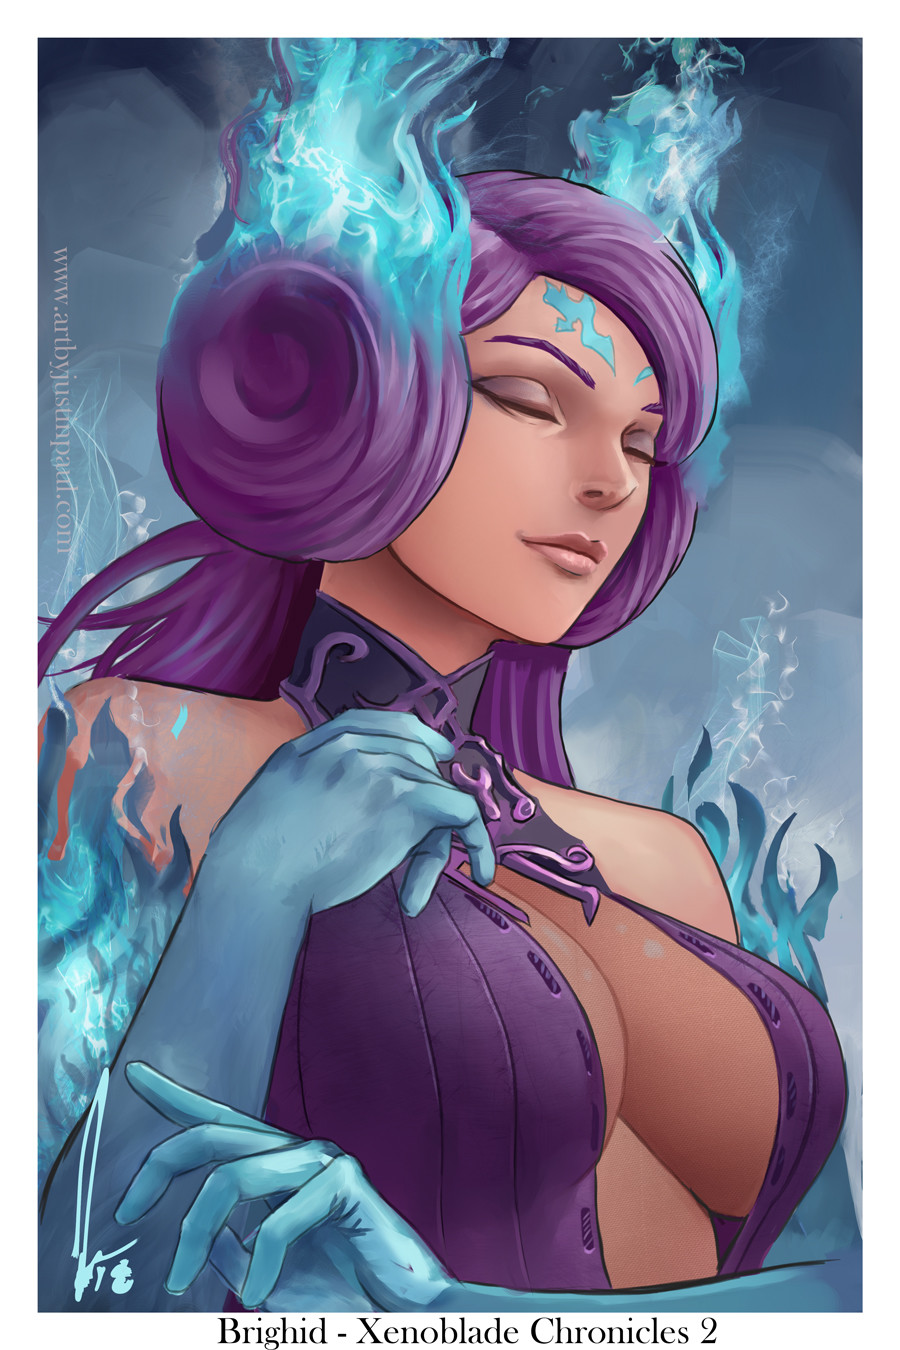 Brighid - Xenoblade Chronicles 2